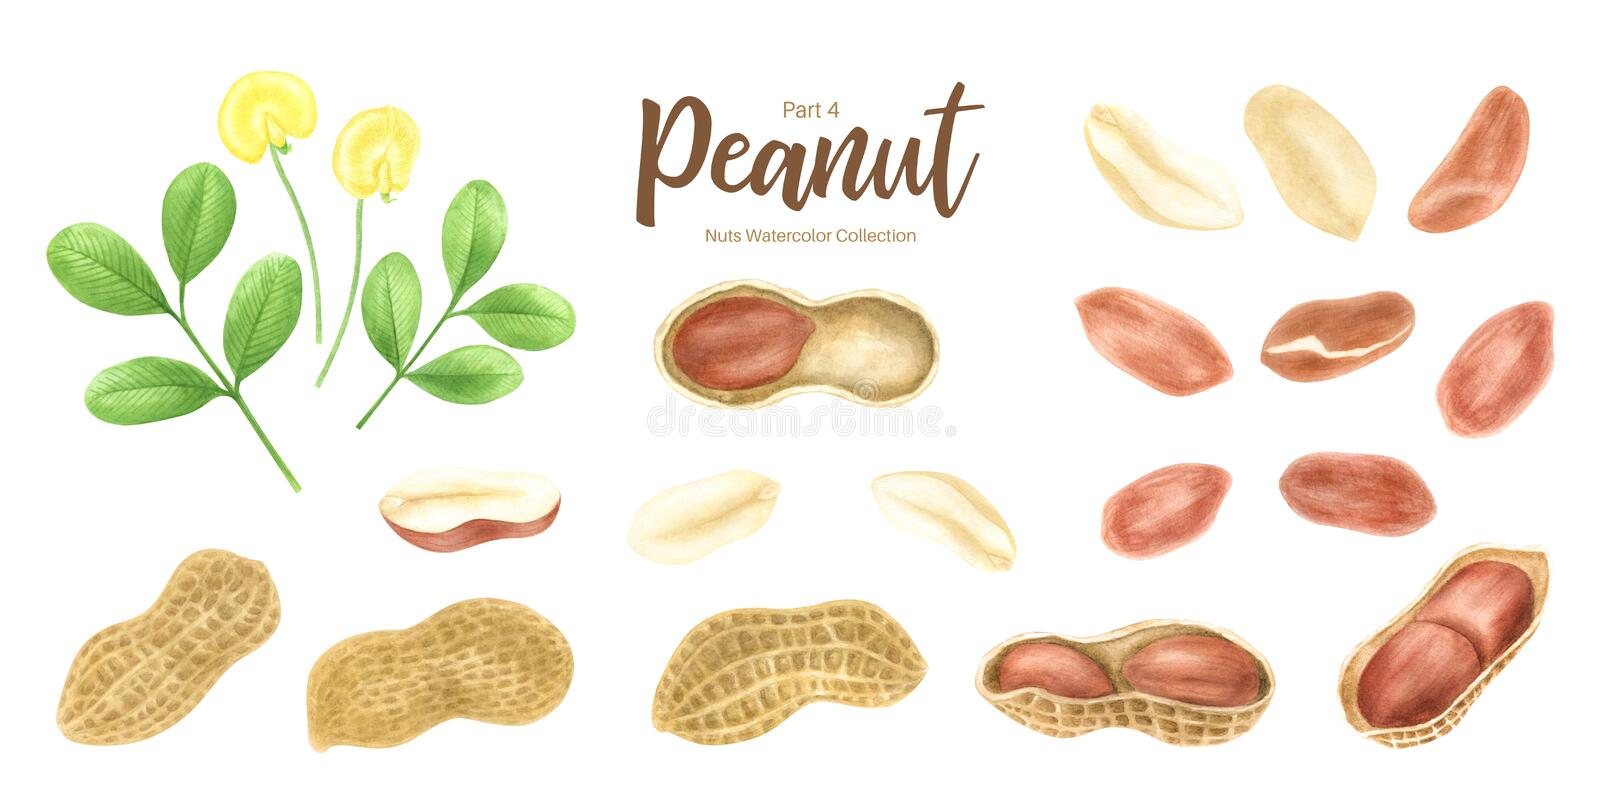 Peanut. Groundnut whole , halves, in shell and individual kernels isolated on white background set.Traditional and. Healthy peanut butter breakfast food stock illustration